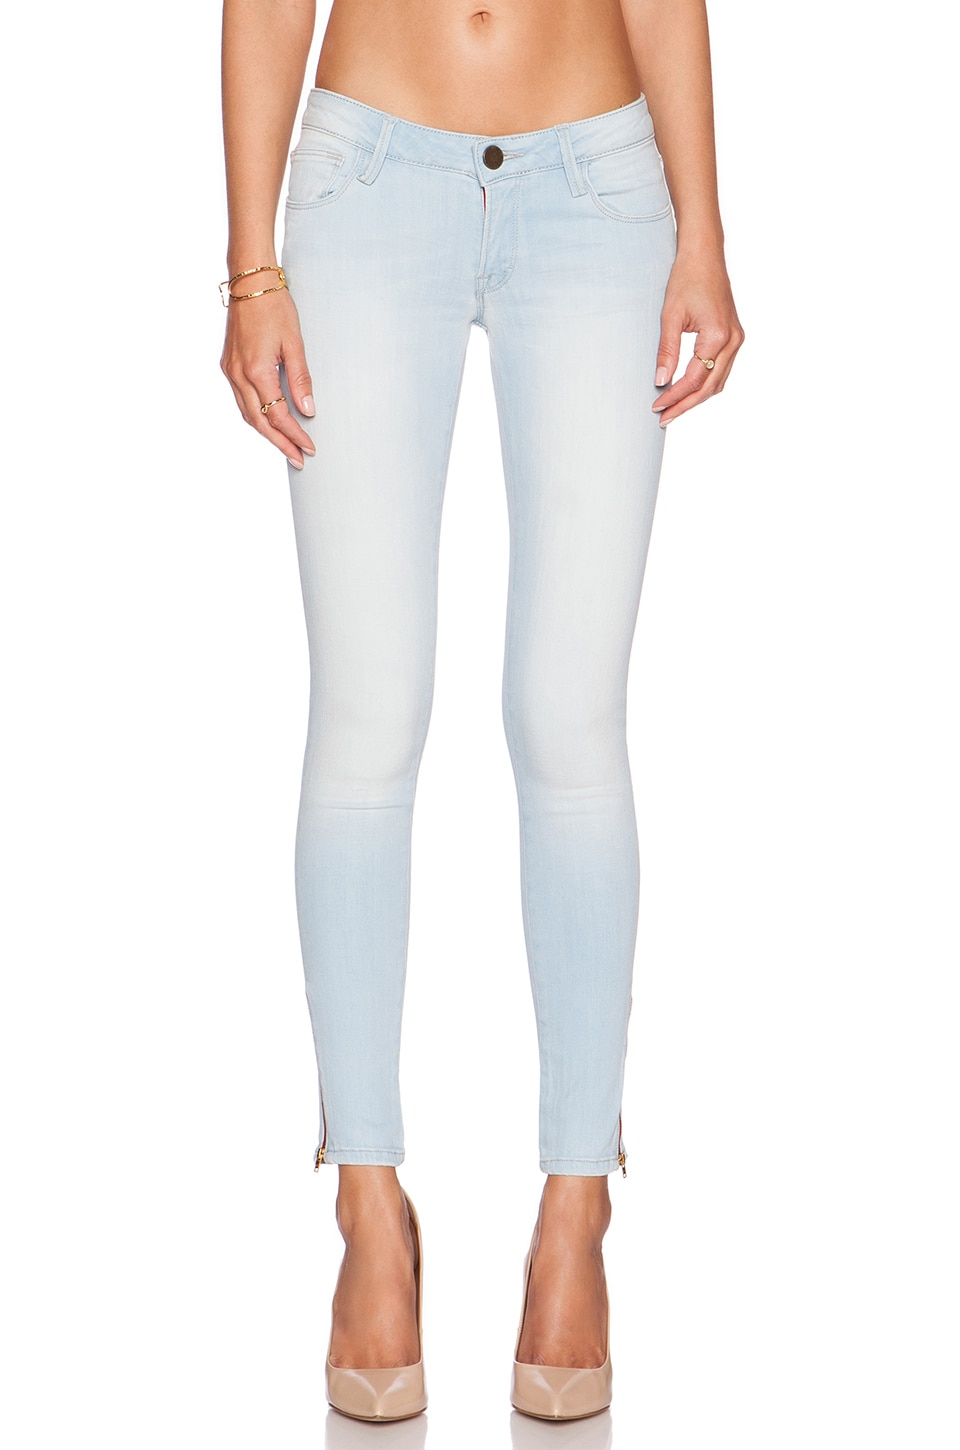 Midrise Skinny Cropped Jeans by Etienne Marcel